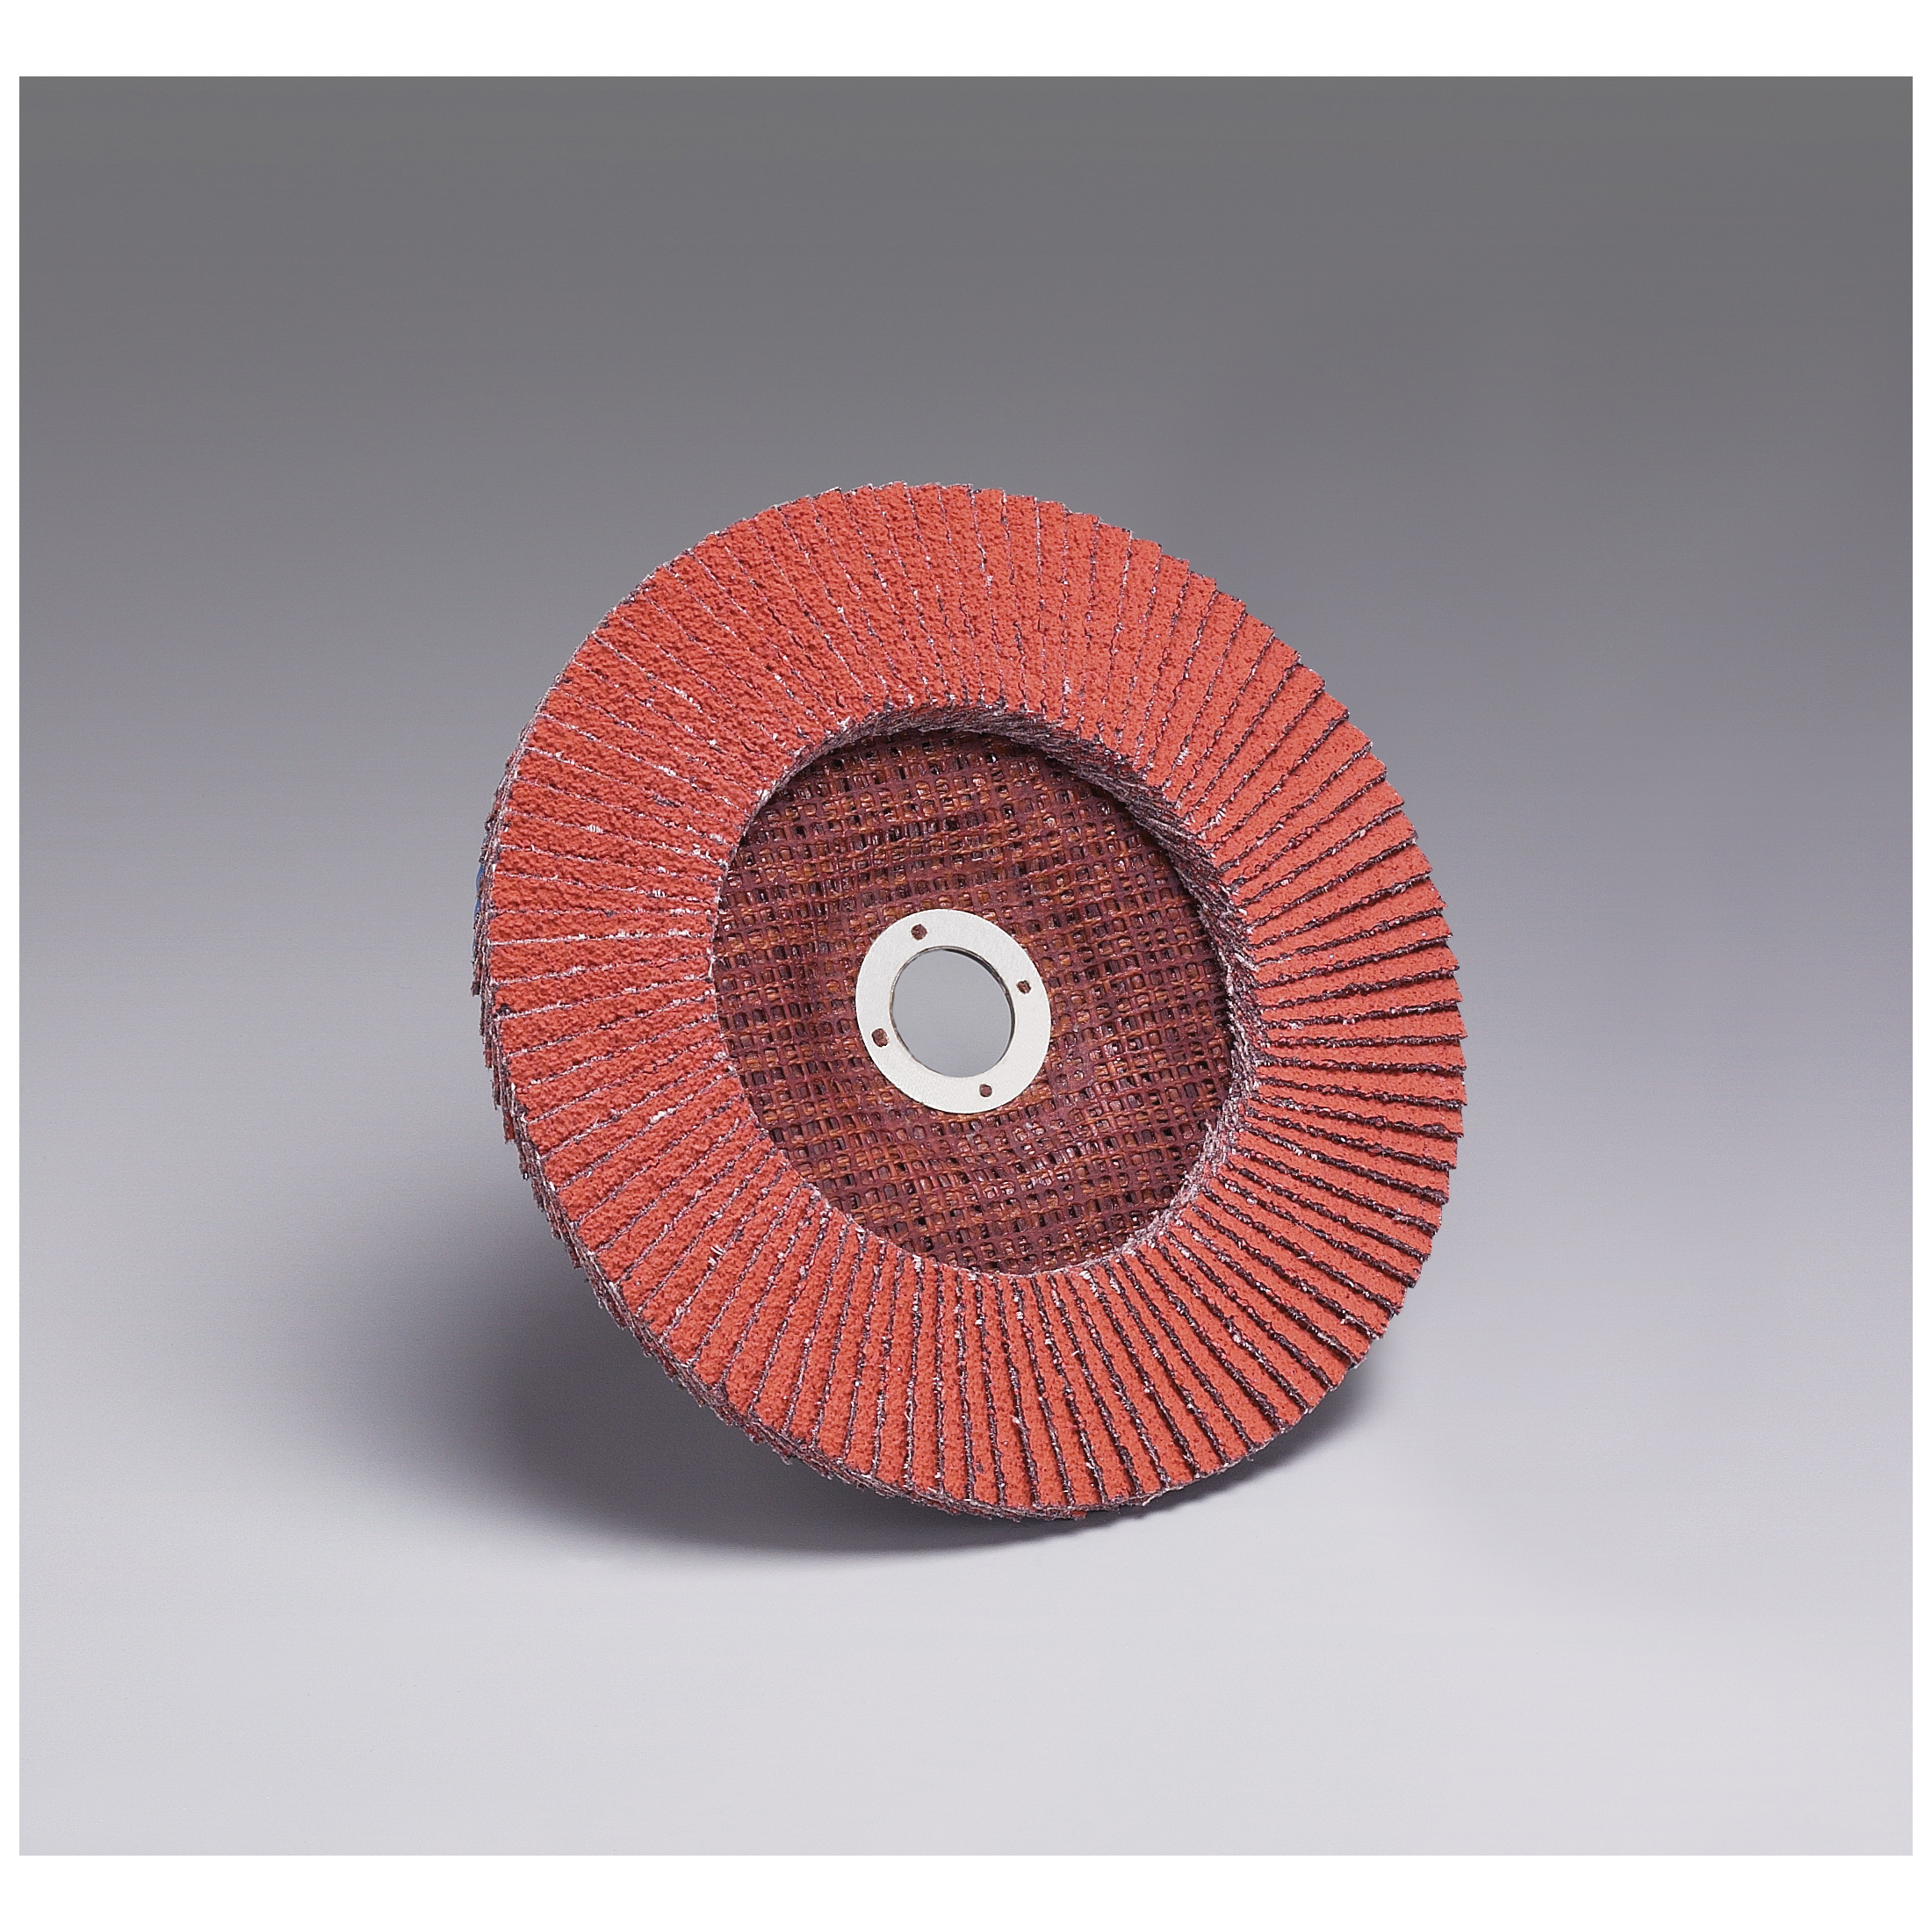 3M™ 051111-49611 747D Close Quick-Change Close Coated Flap Disc, 7 in Dia Disc, 7/8 in Center Hole, 80 Grit, Medium Grade, Ceramic Abrasive, Type 27 Disc